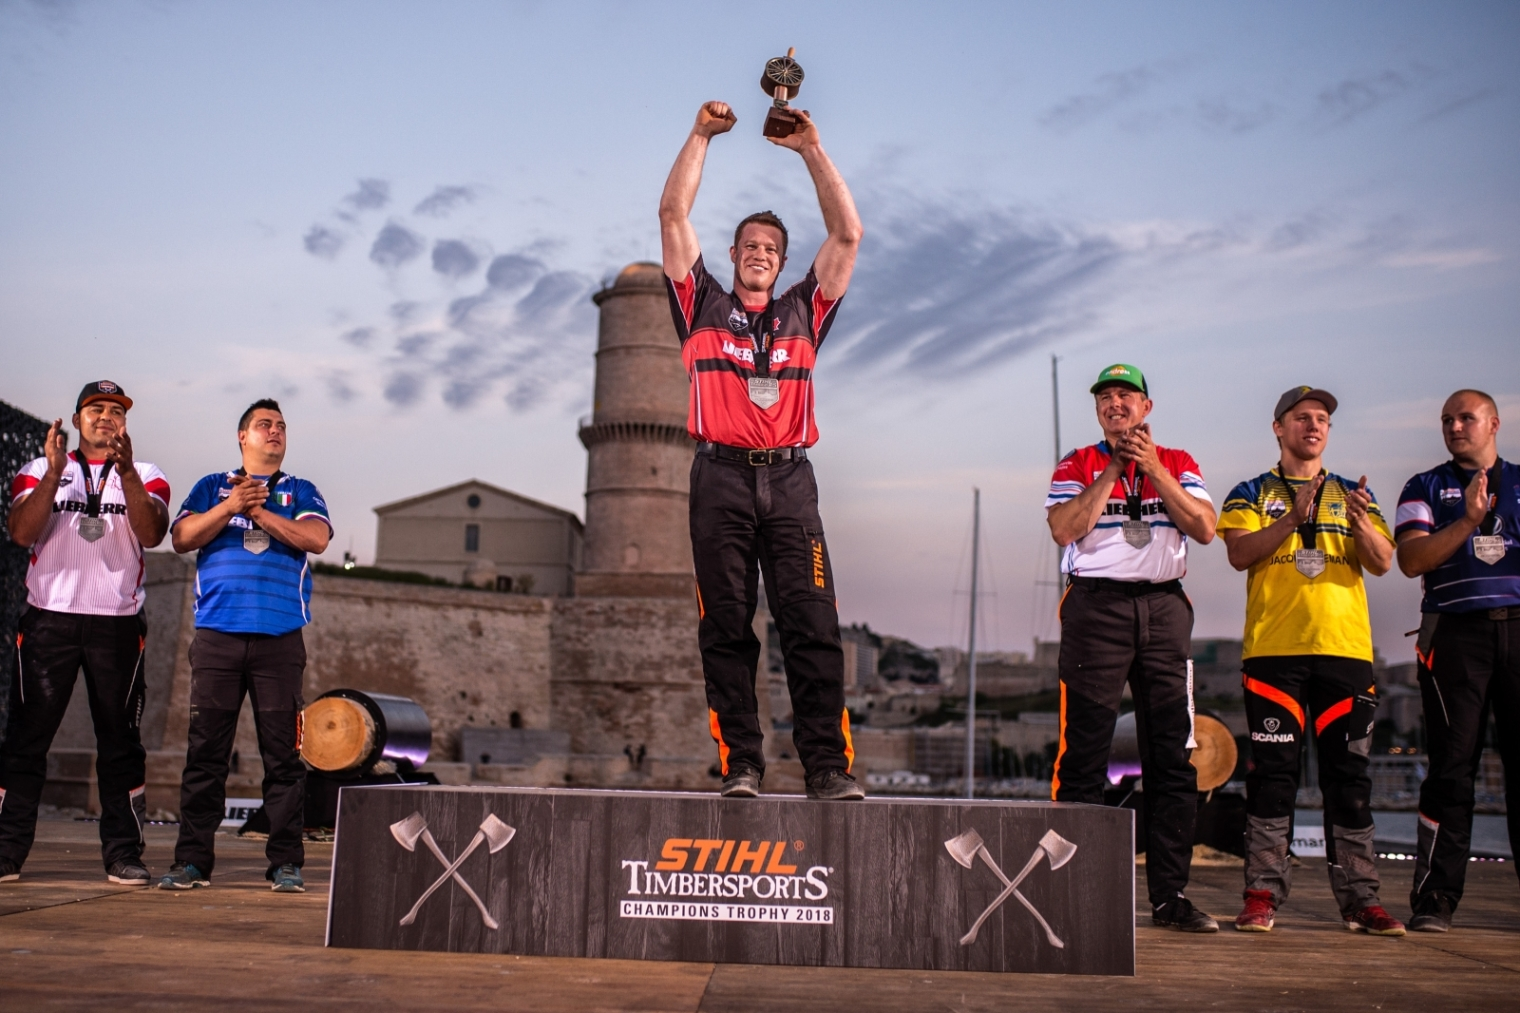 Stirling Hart of Canada celebrates after winning the Stihl TIMBERSPORTS® Champions Trophy in Marseille, France on May 26, 2018.